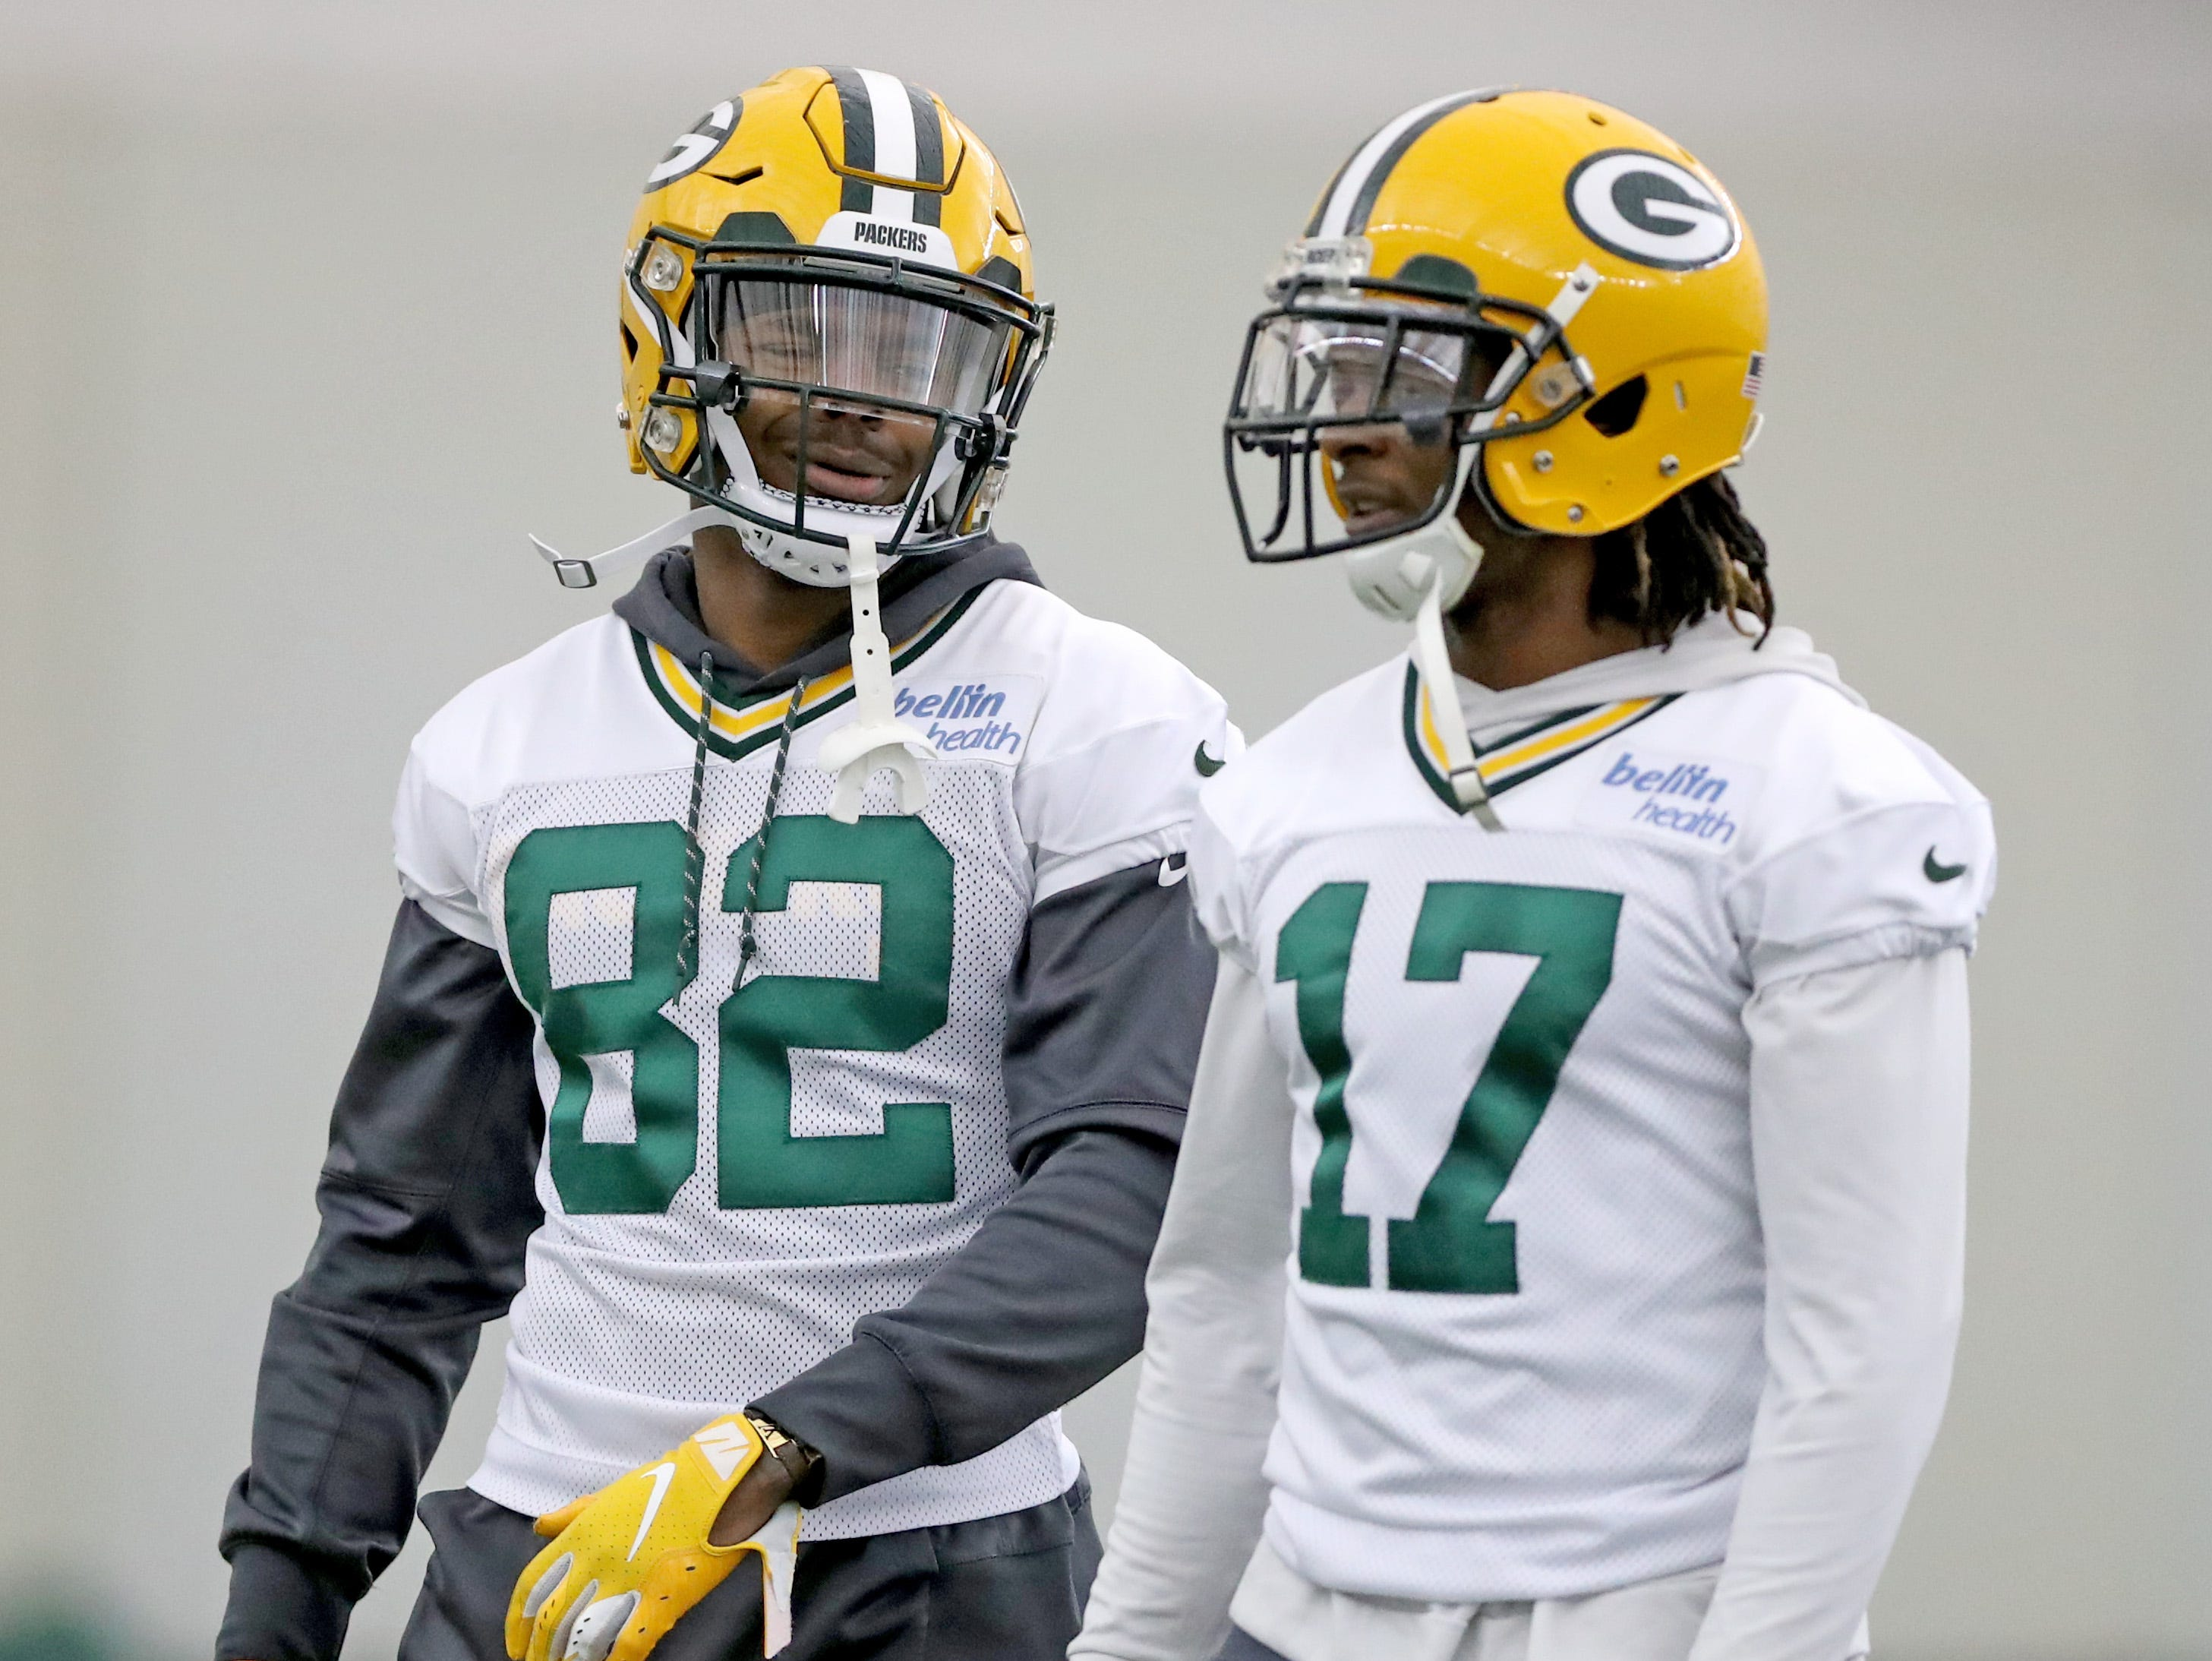 Green Bay Packers wide receiver J'Mon Moore (82) talks with wide receiver Davante Adams (17) during practice Wednesday, November 21, 2018 inside the Don Hutson Center in Ashwaubenon, Wis.